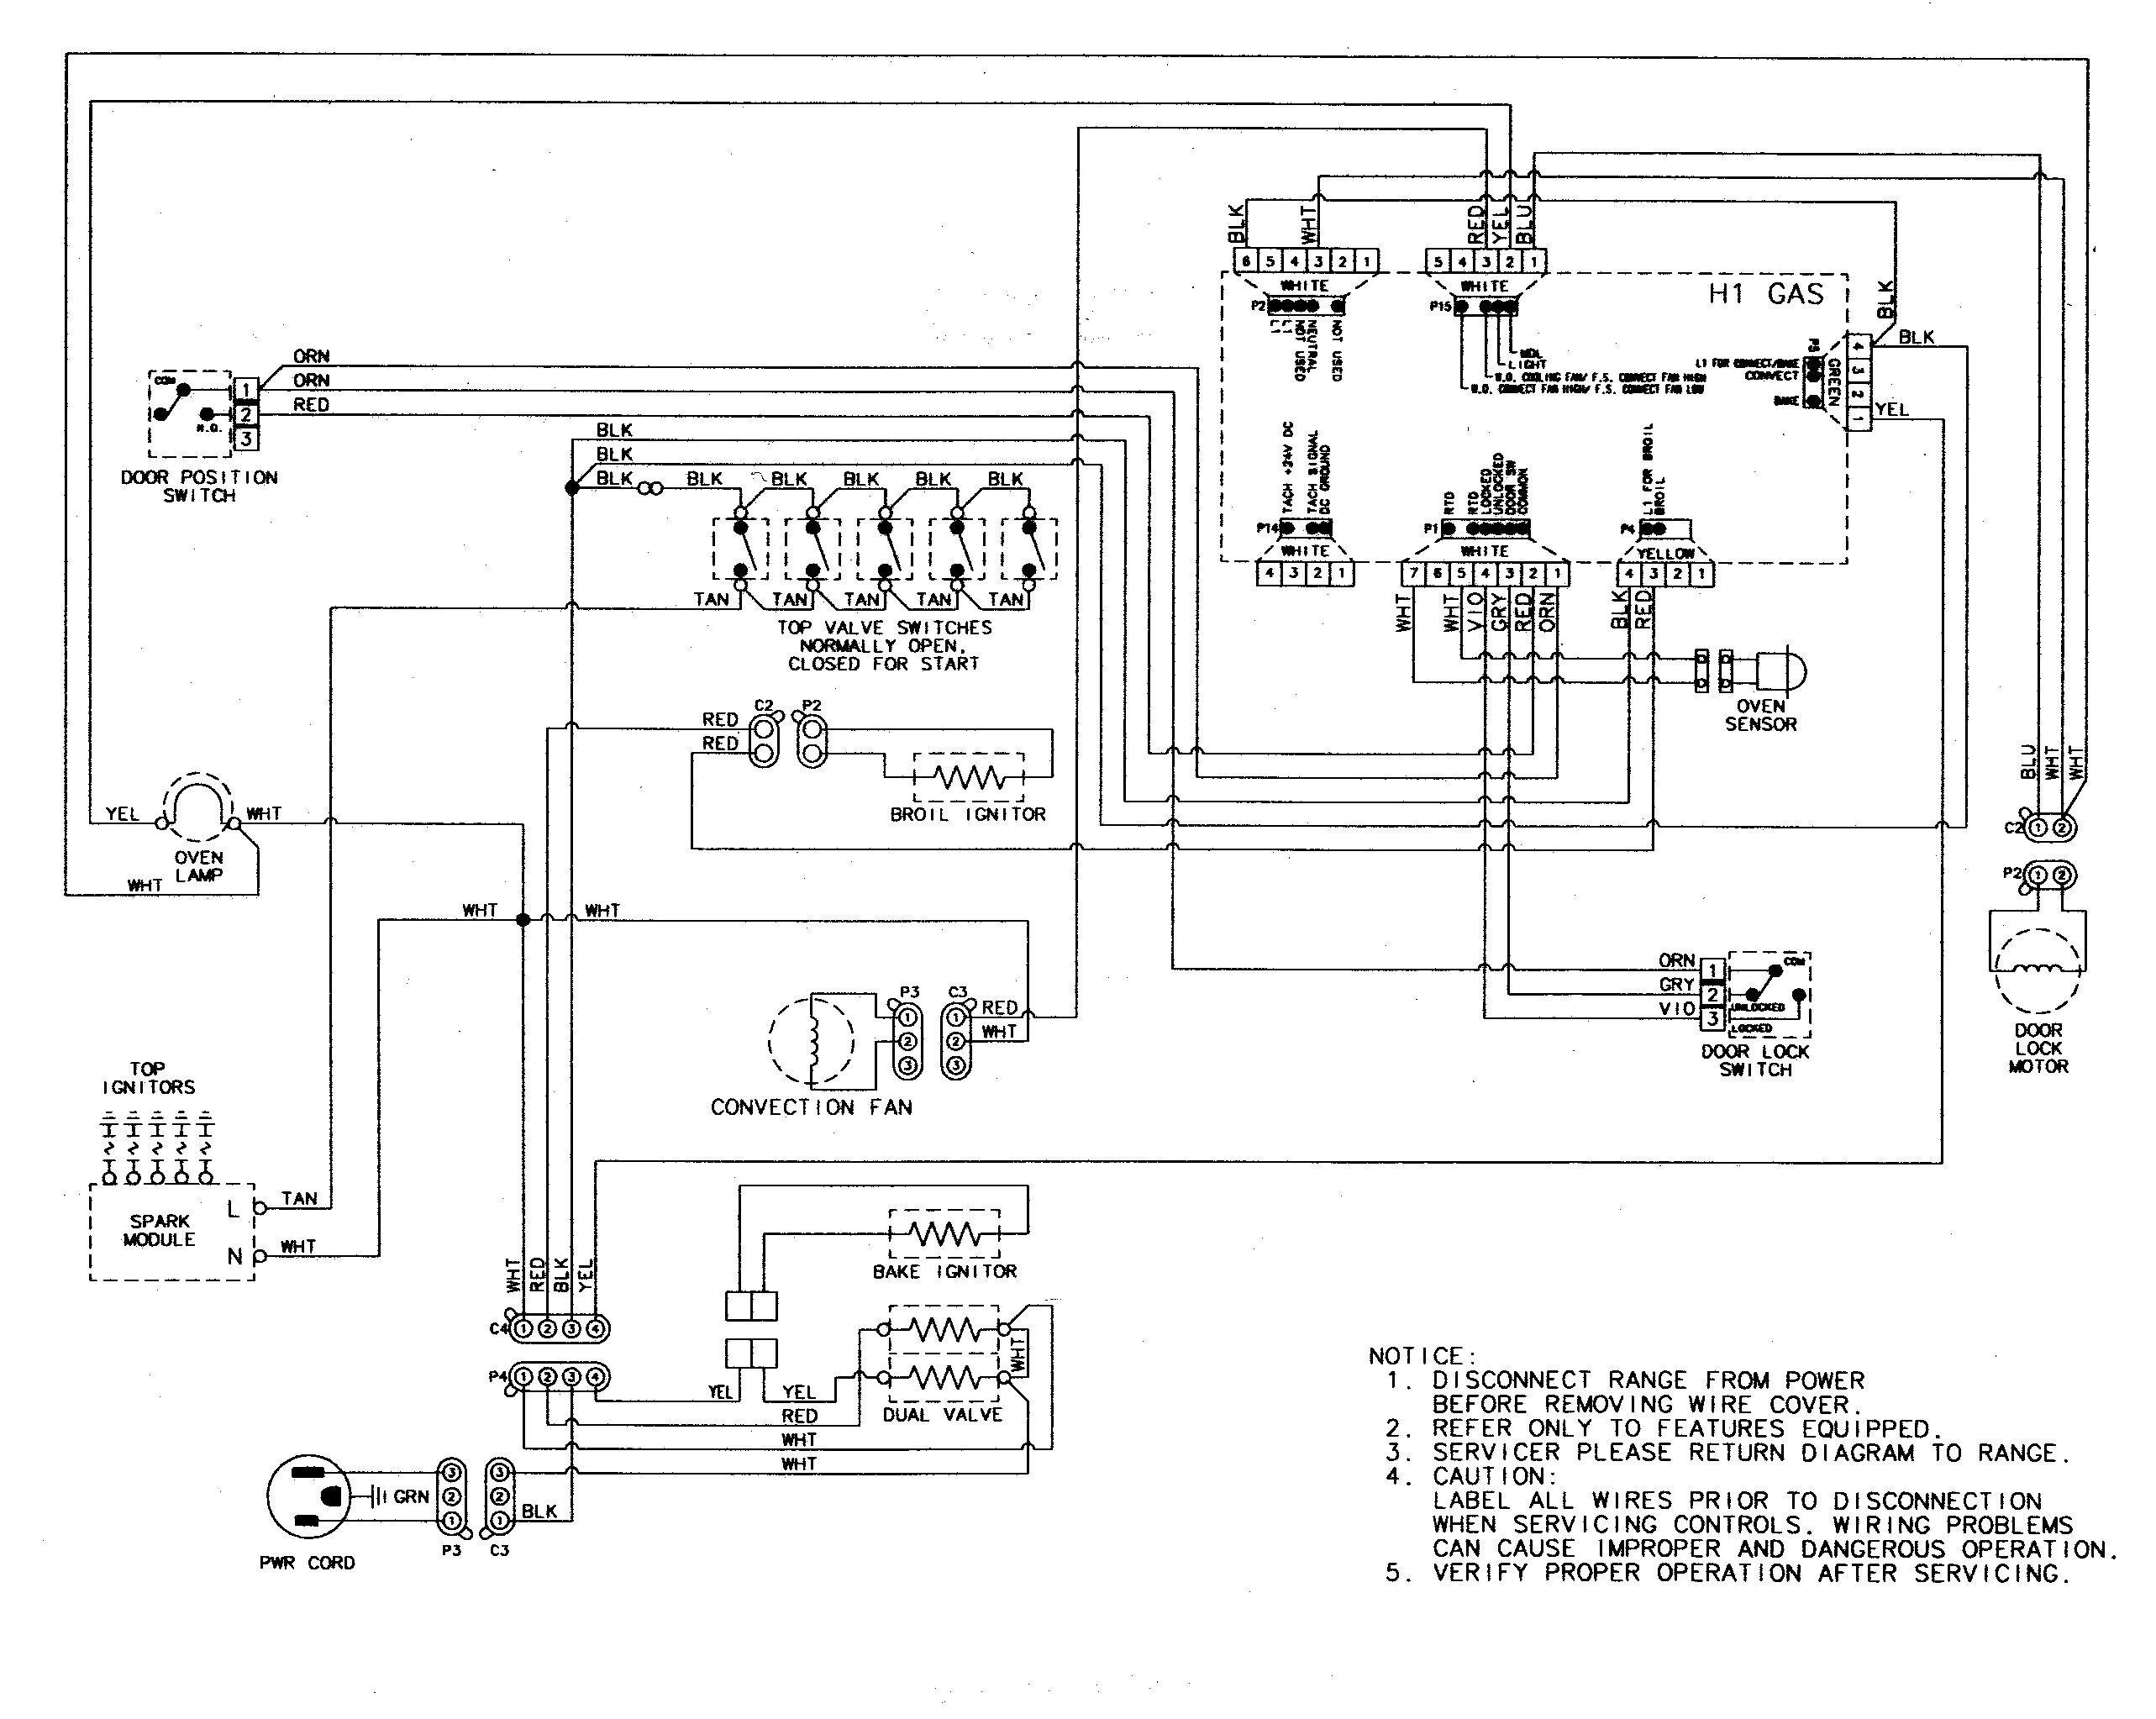 whirlpool electric dryer wiring diagram Collection-Wiring Diagram Appliance Dryer Best Whirlpool Gas Dryer Wiring Diagram Collection 16-b